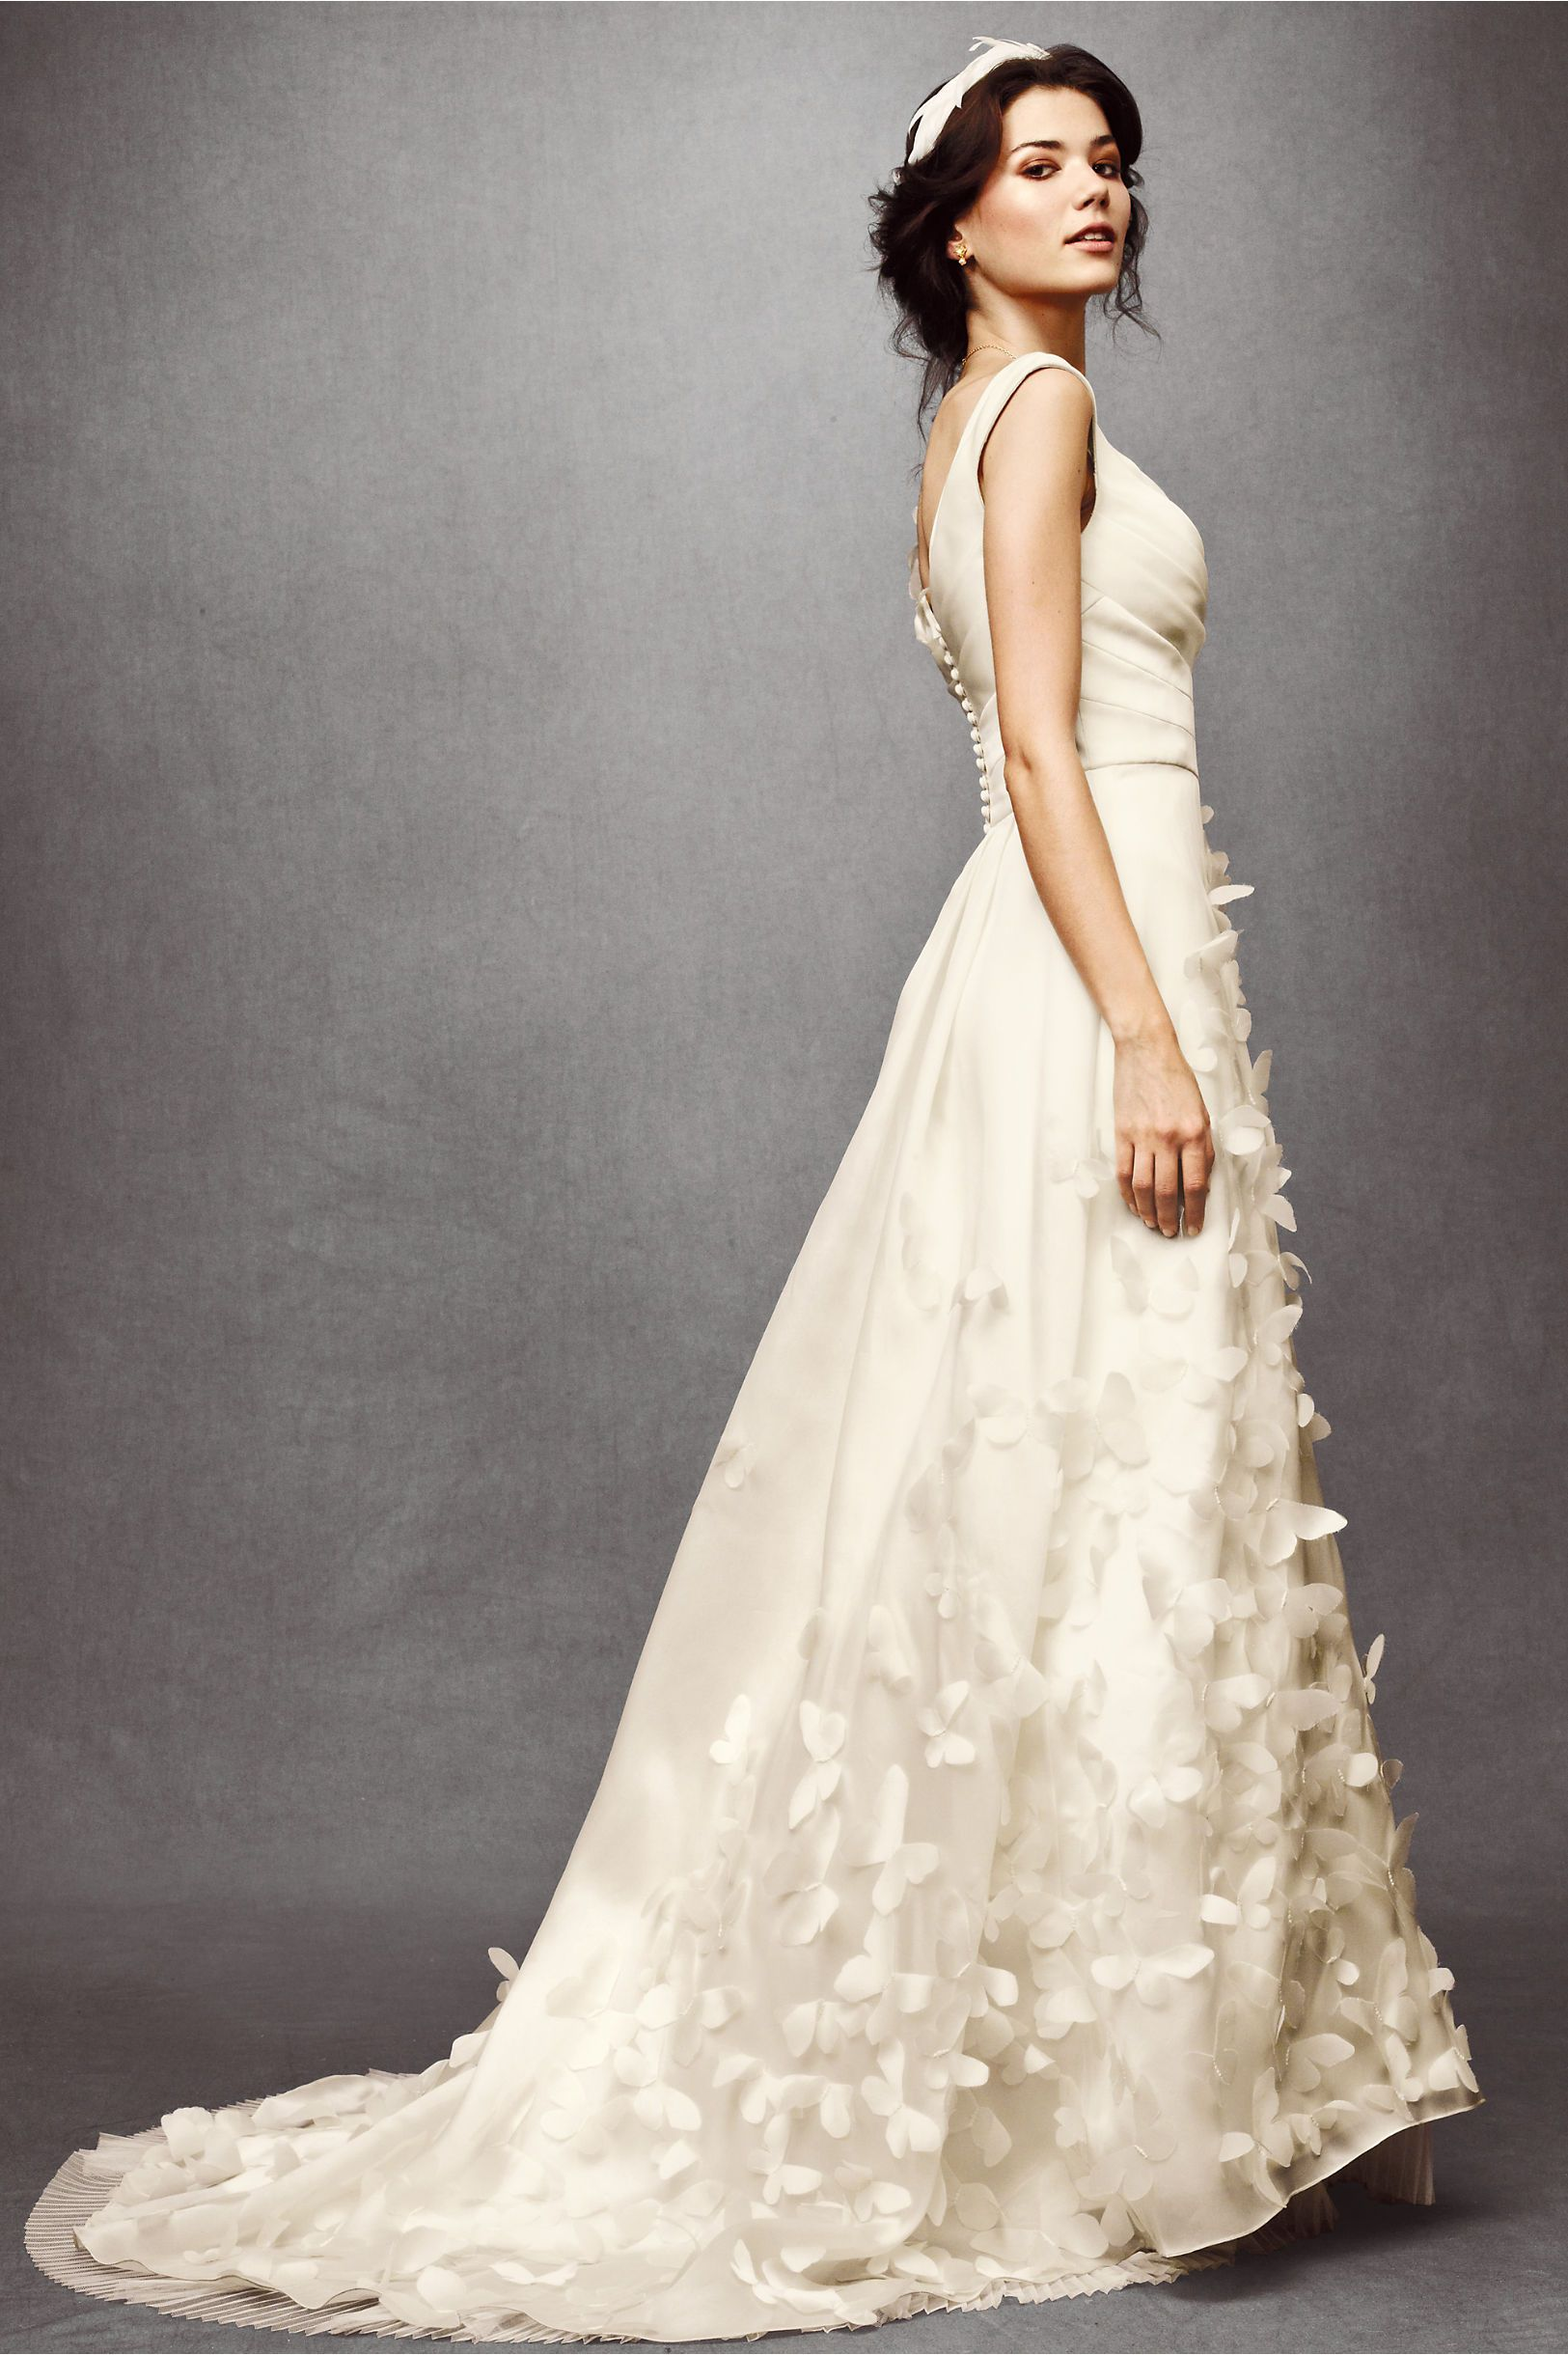 Ethereal monarch gown in shop the bride wedding dresses at bhldn ethereal monarch gown in shop the bride wedding dresses at bhldn ombrellifo Image collections